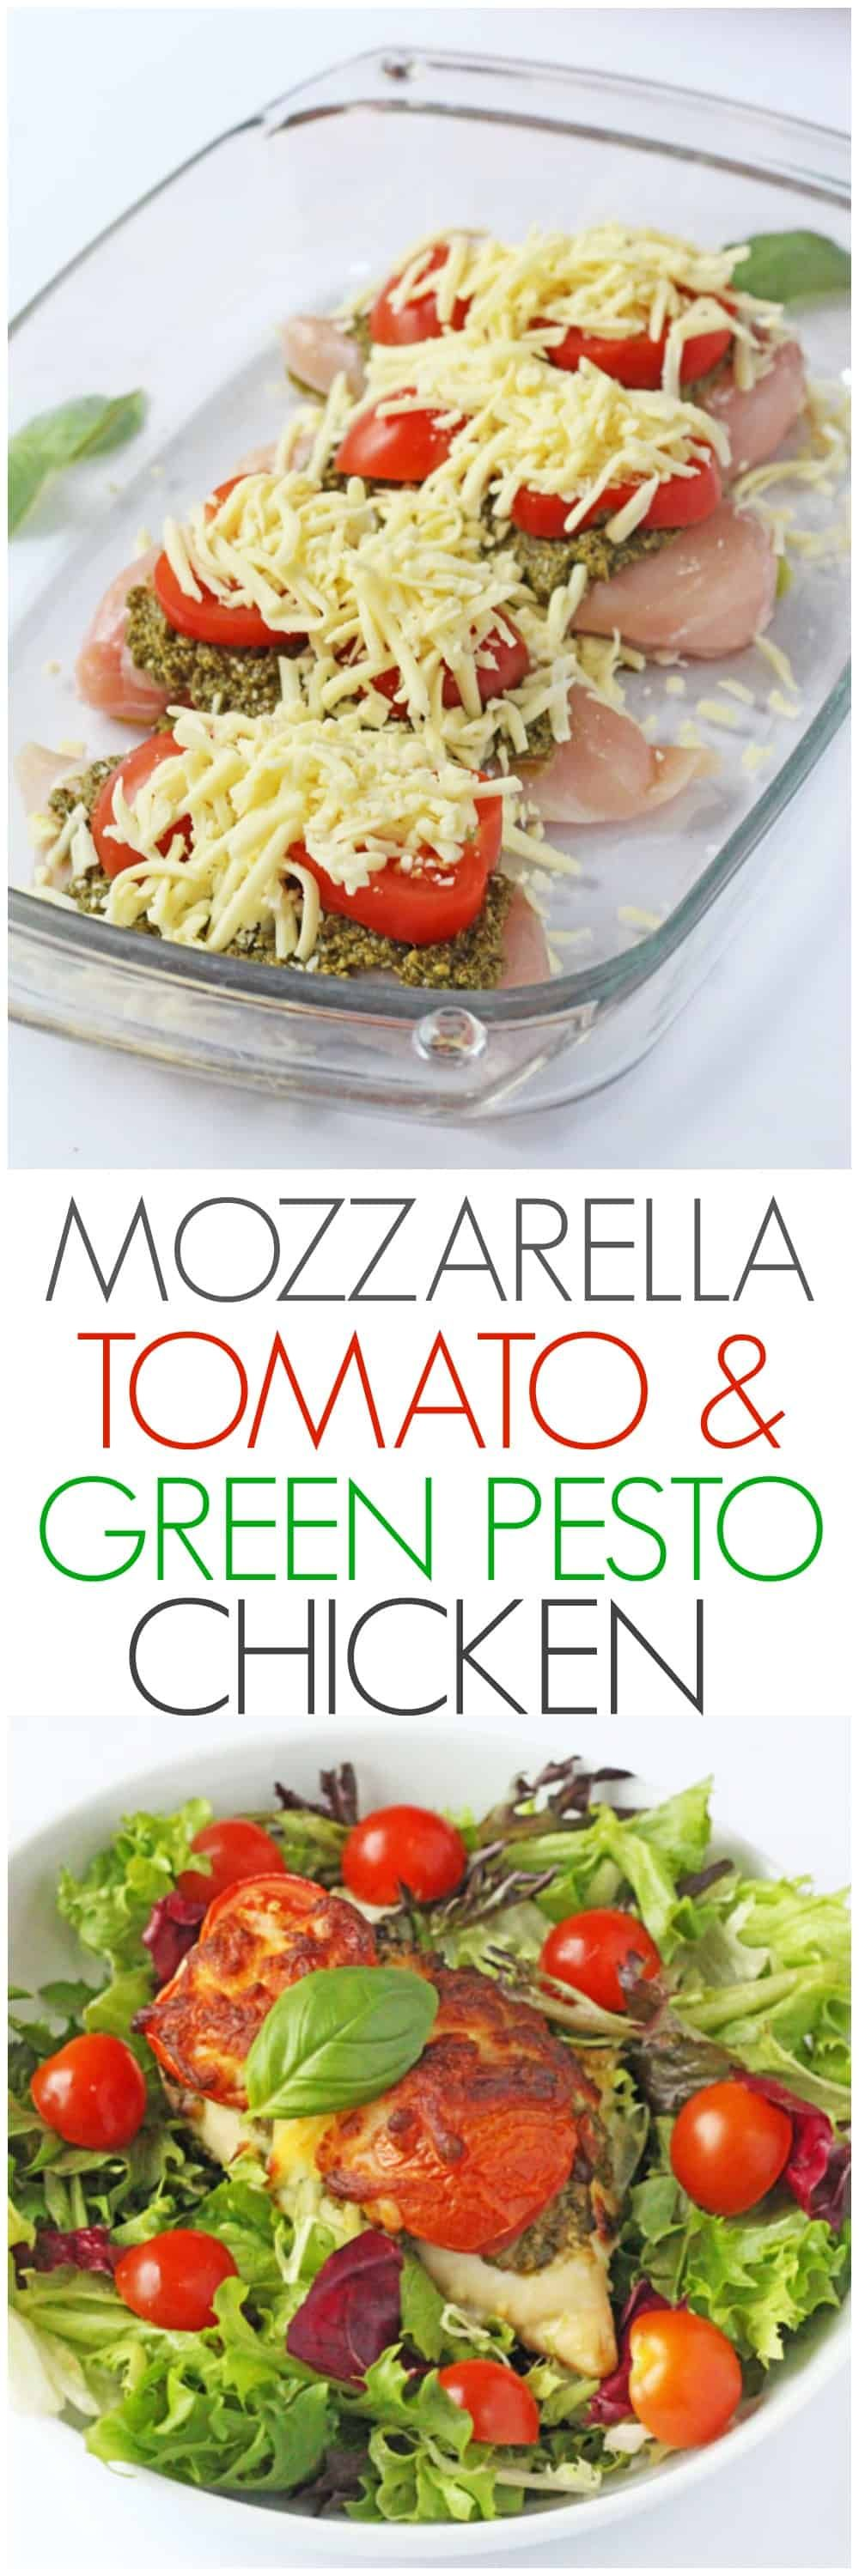 Mozzarella, Tomato & Basil Pesto Chicken is part of Basil pesto chicken - A delicious and easy mid week meal  Just 3 minutes prep and 30 minutes in the oven to make this Mozzarella, Tomato & Basil Pesto Chicken!